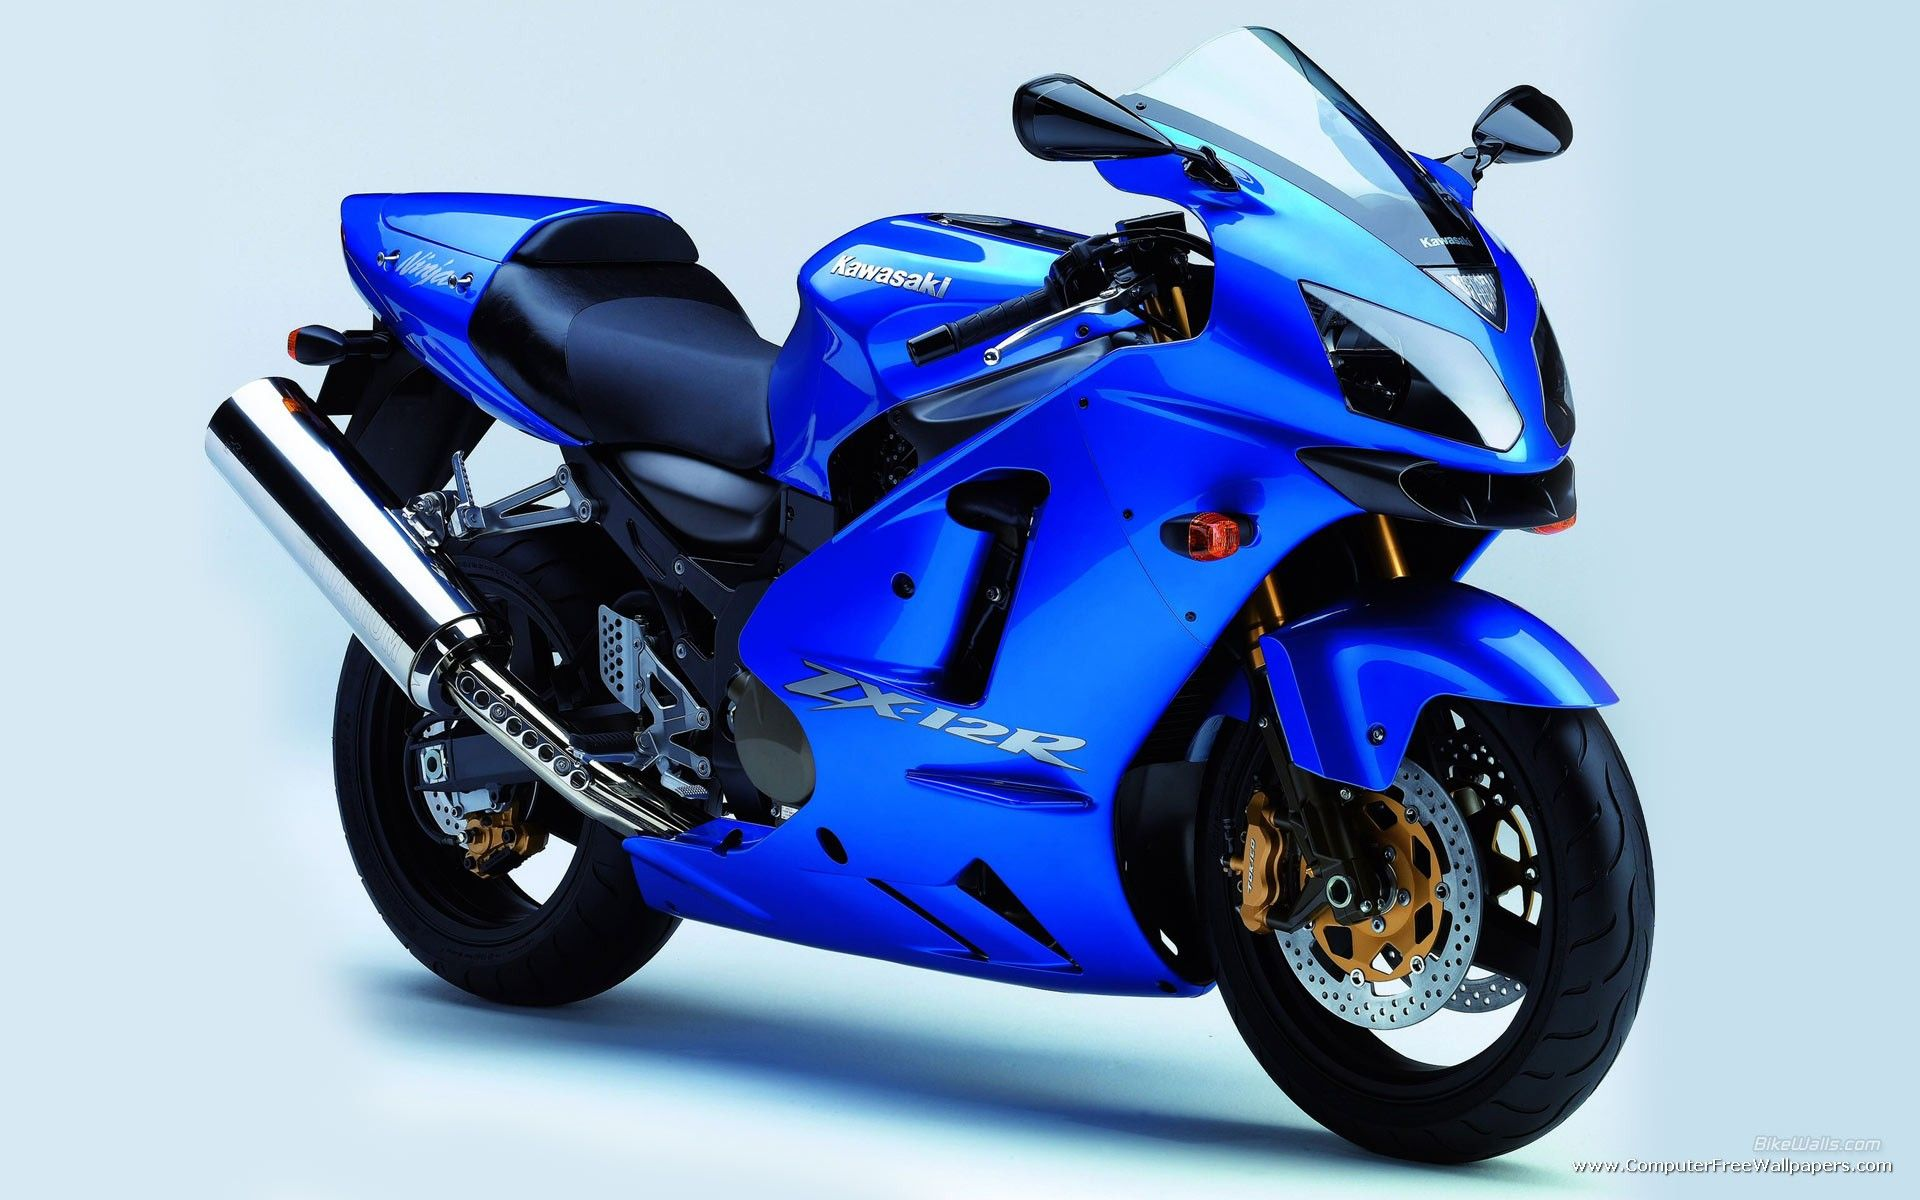 nijia bikes photos | download kawasaki ninja motocycles bikes